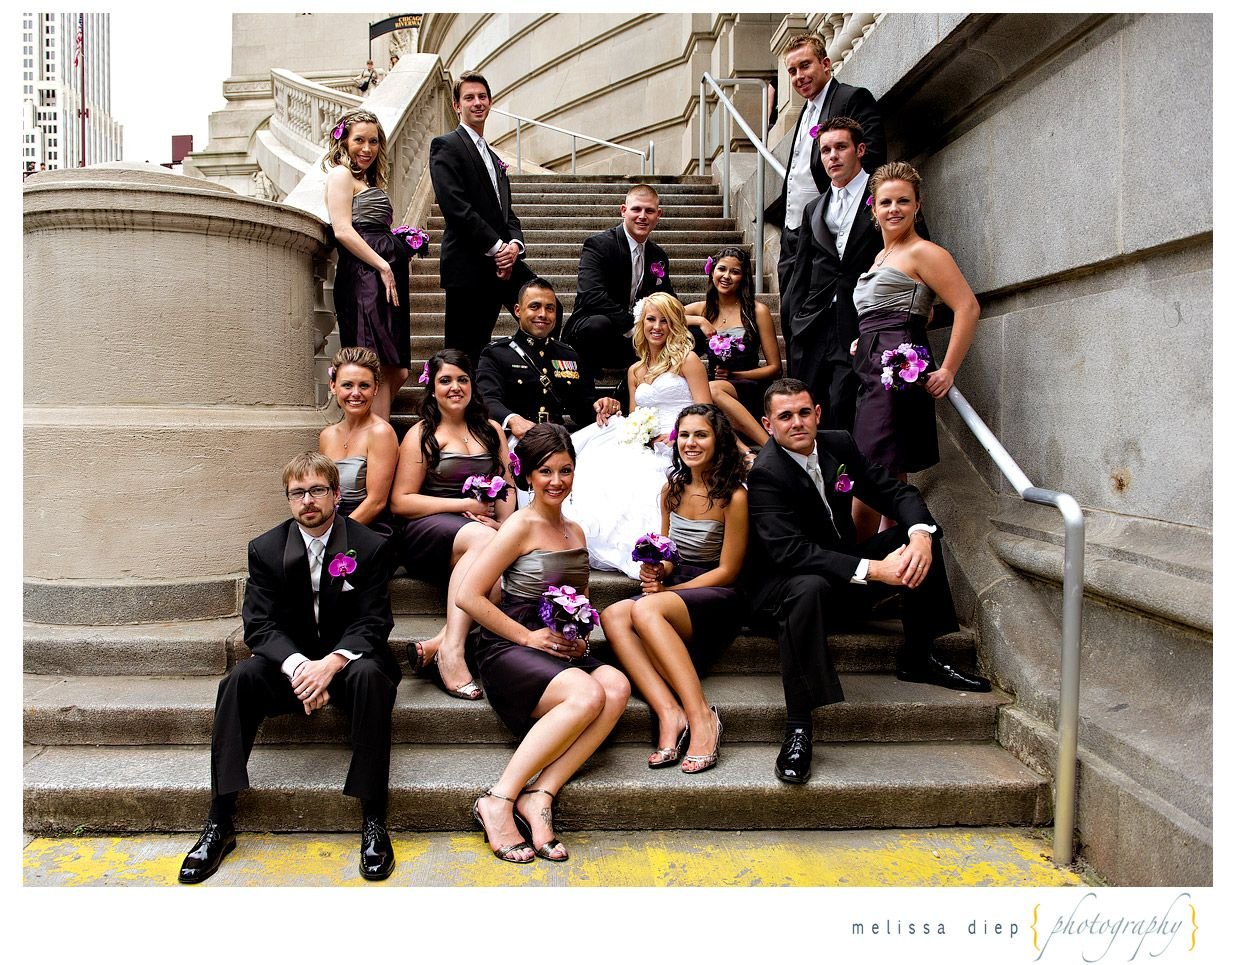 Casual Wedding Party Poses - love them. - Melissa Diep Photography